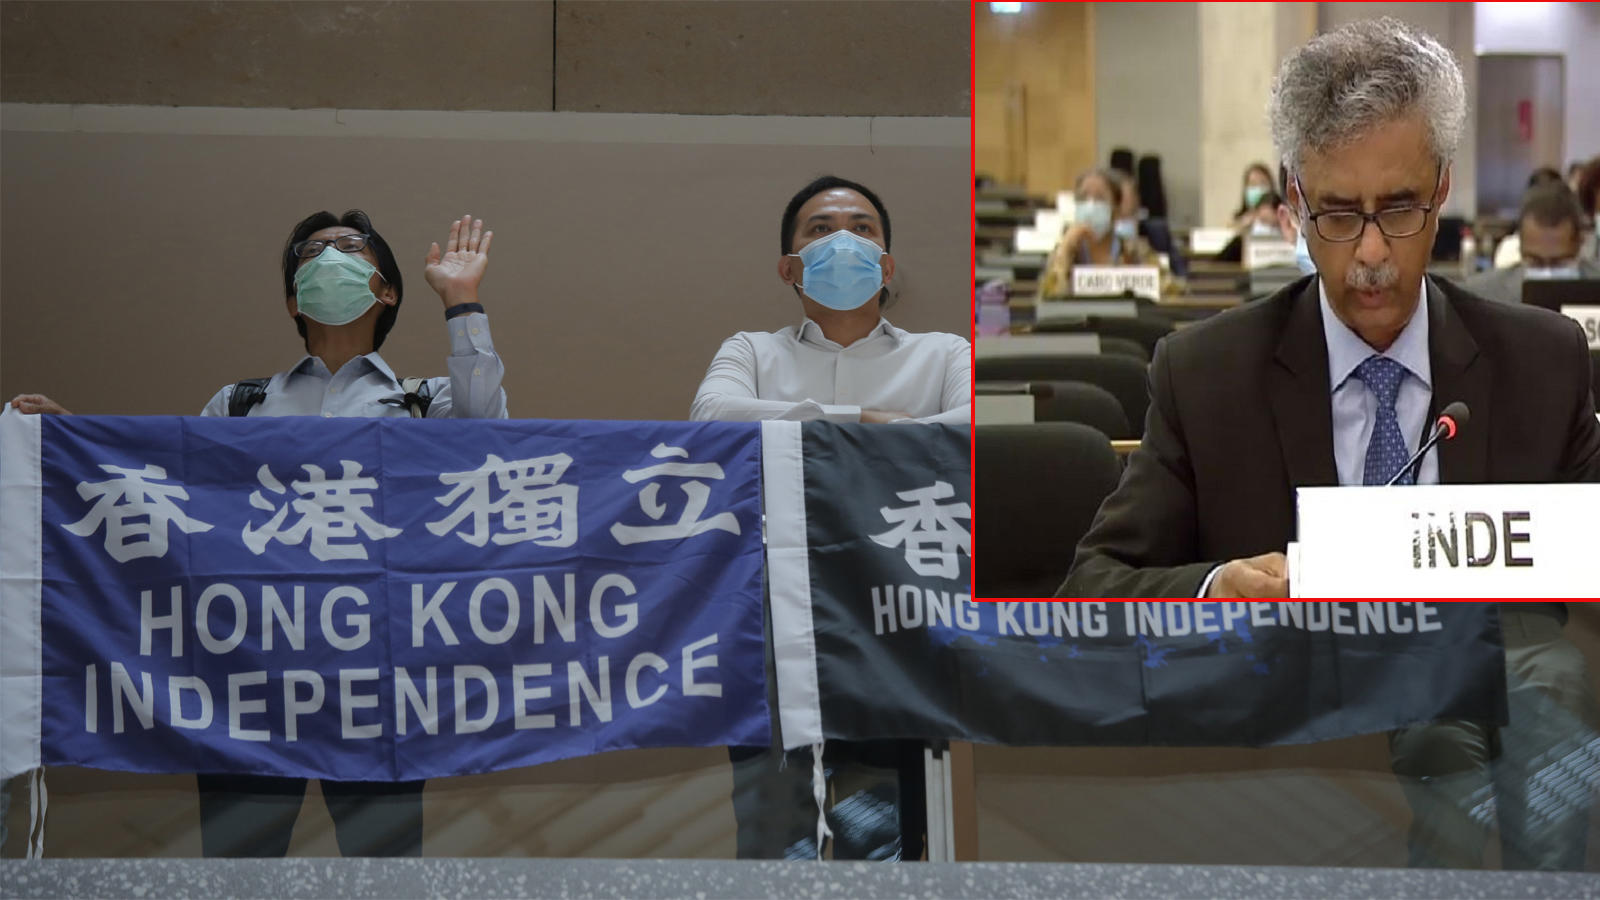 india-uses-hong-kong-to-land-diplomatic-punch-on-china